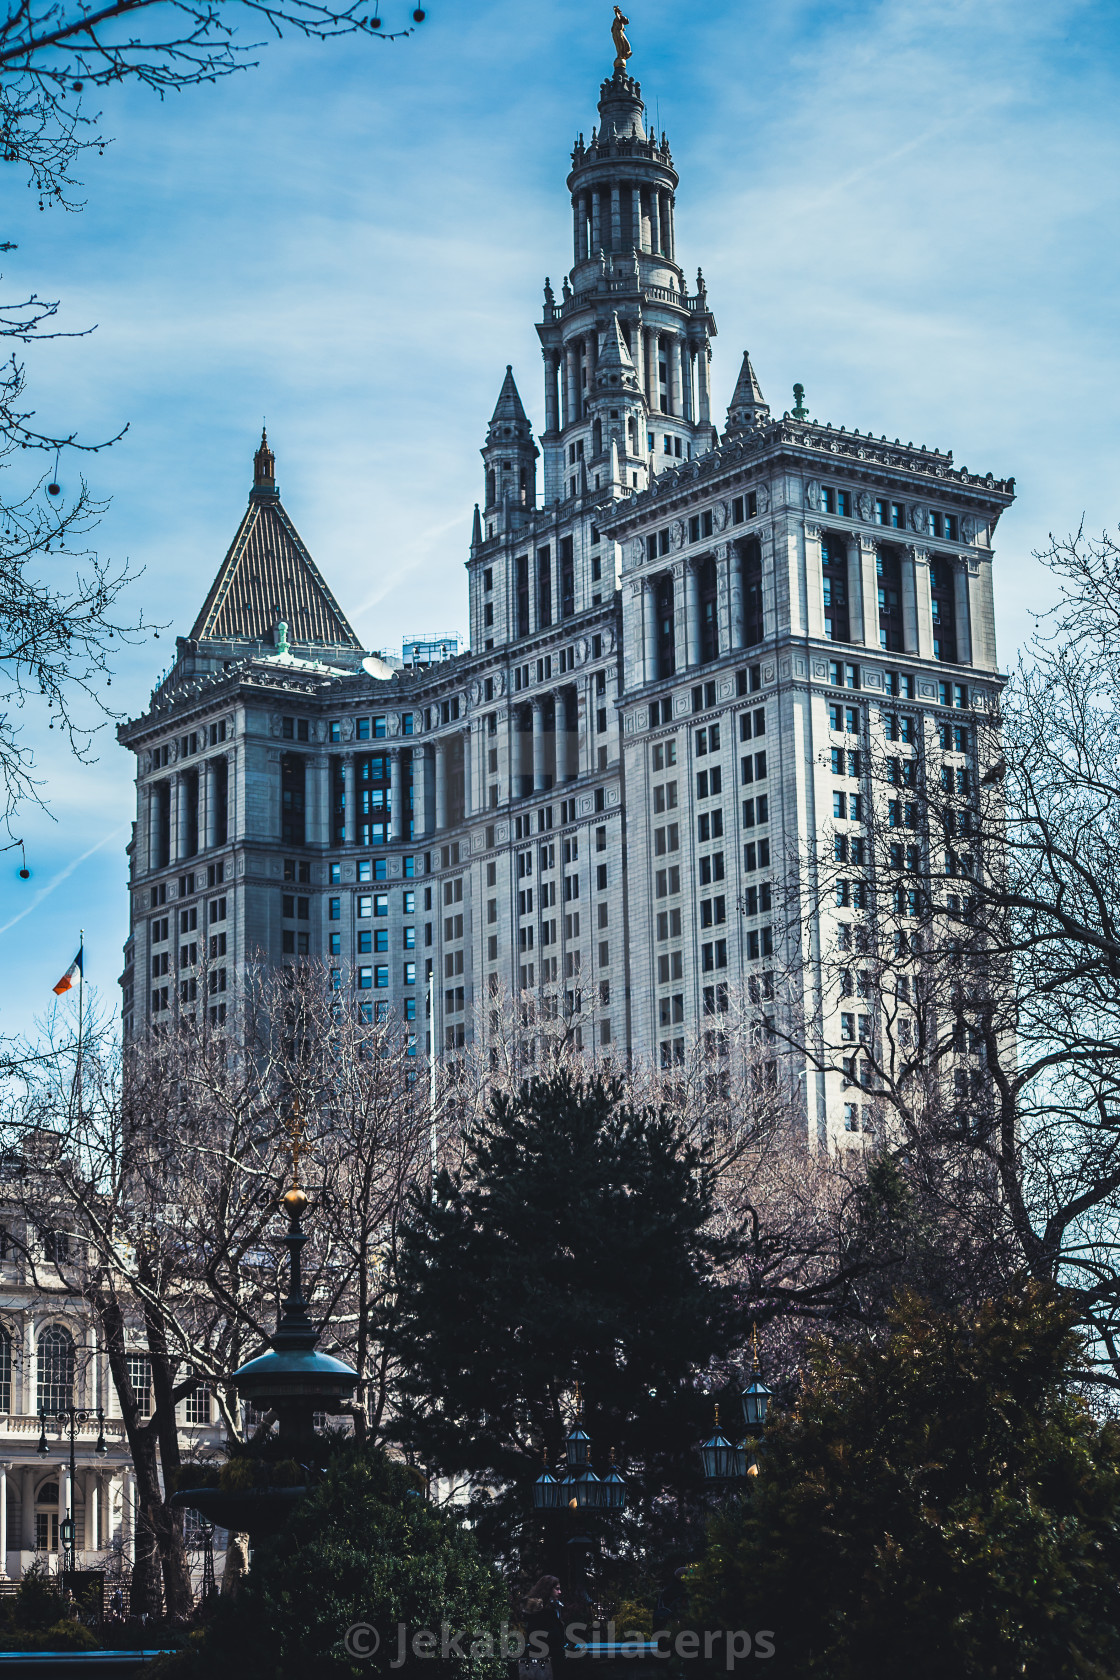 the david n dinkins manhattan municipal building license download or print for 12 10 photos picfair https www picfair com pics 07887811 the david n dinkins manhattan municipal building